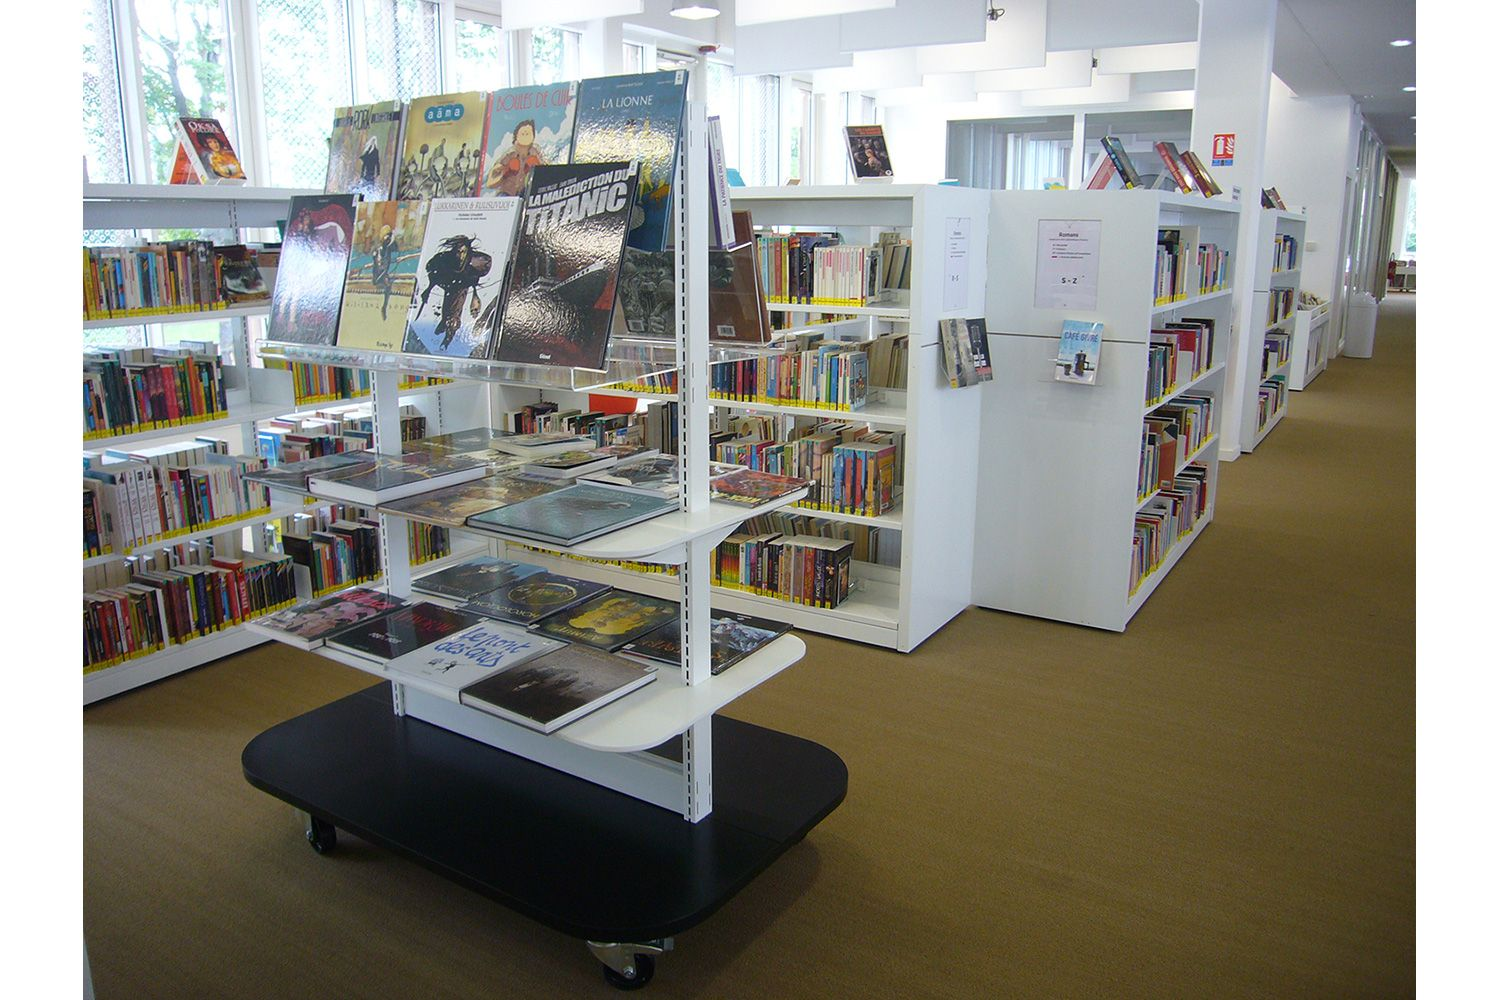 60/30 Expo – display shelving for maximum attention